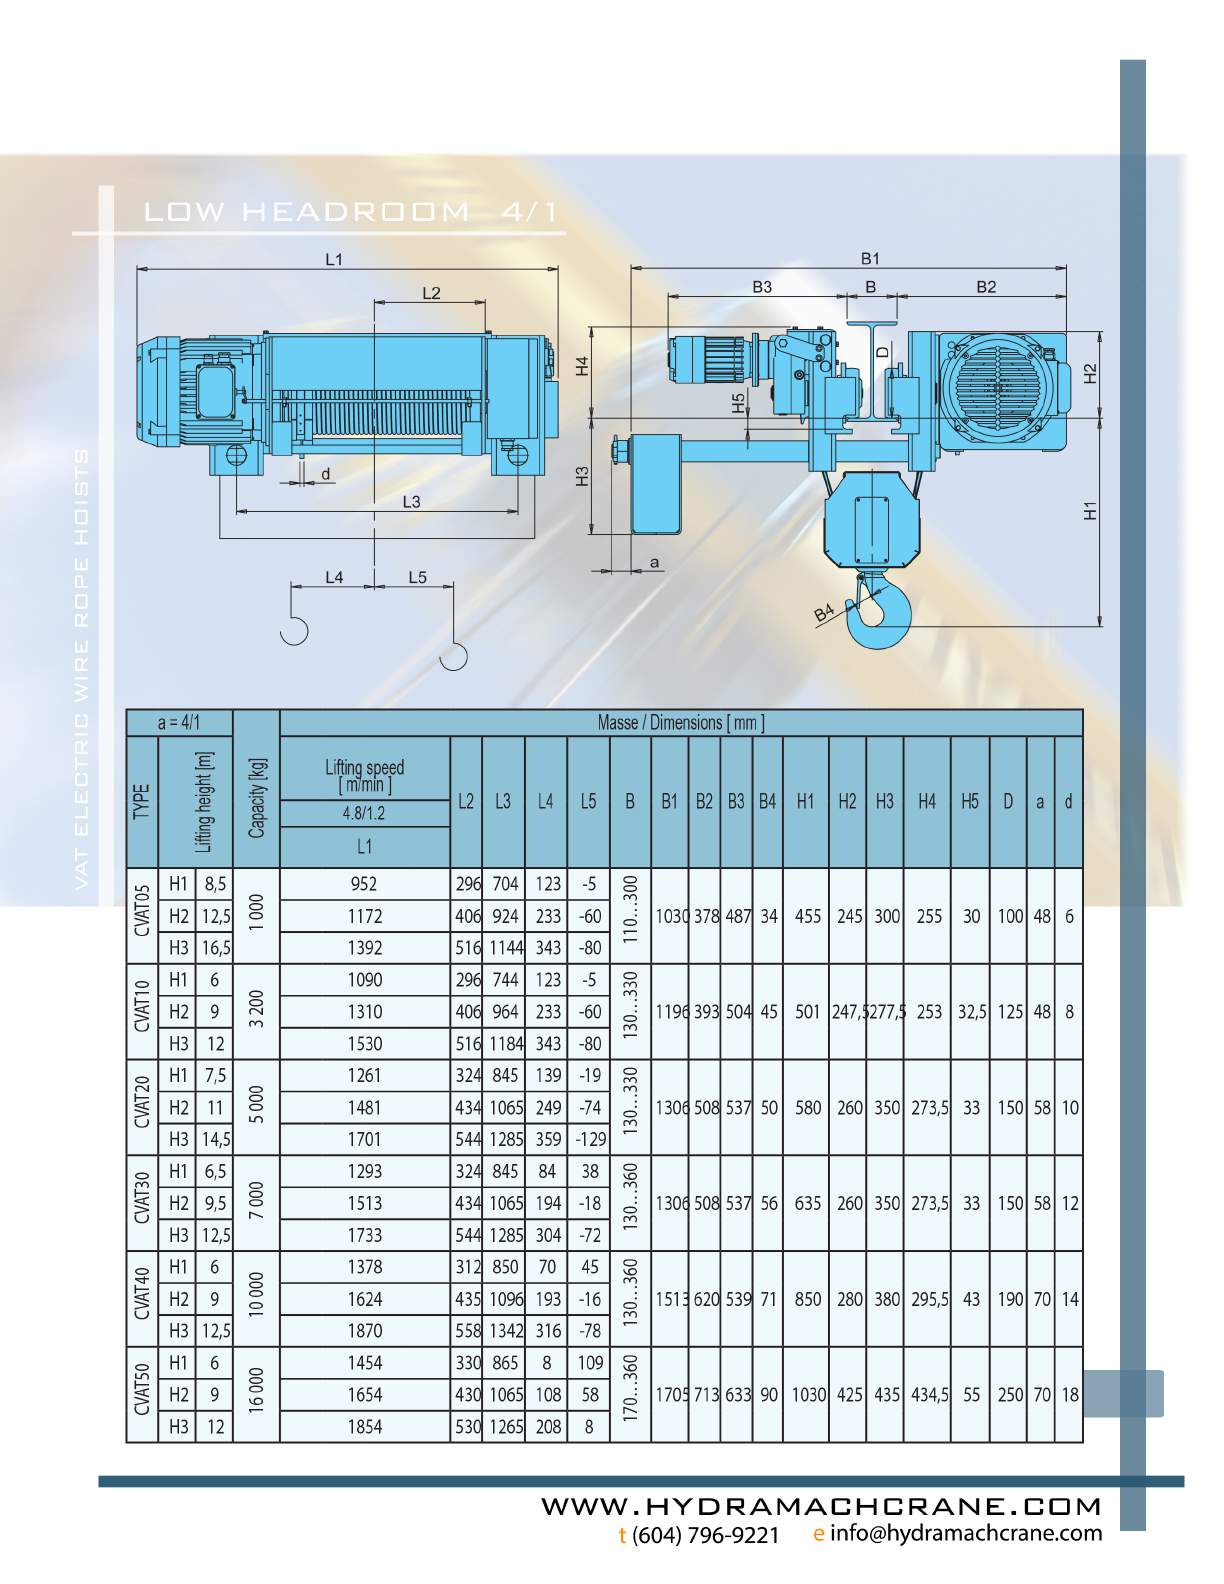 Hydramach Rope Hoists Overhead Crane Wiring Diagram Trolleymotorandoverheadcranewiring Cvat Low Headroom Hoist Image Of First Page Pdf Specifications